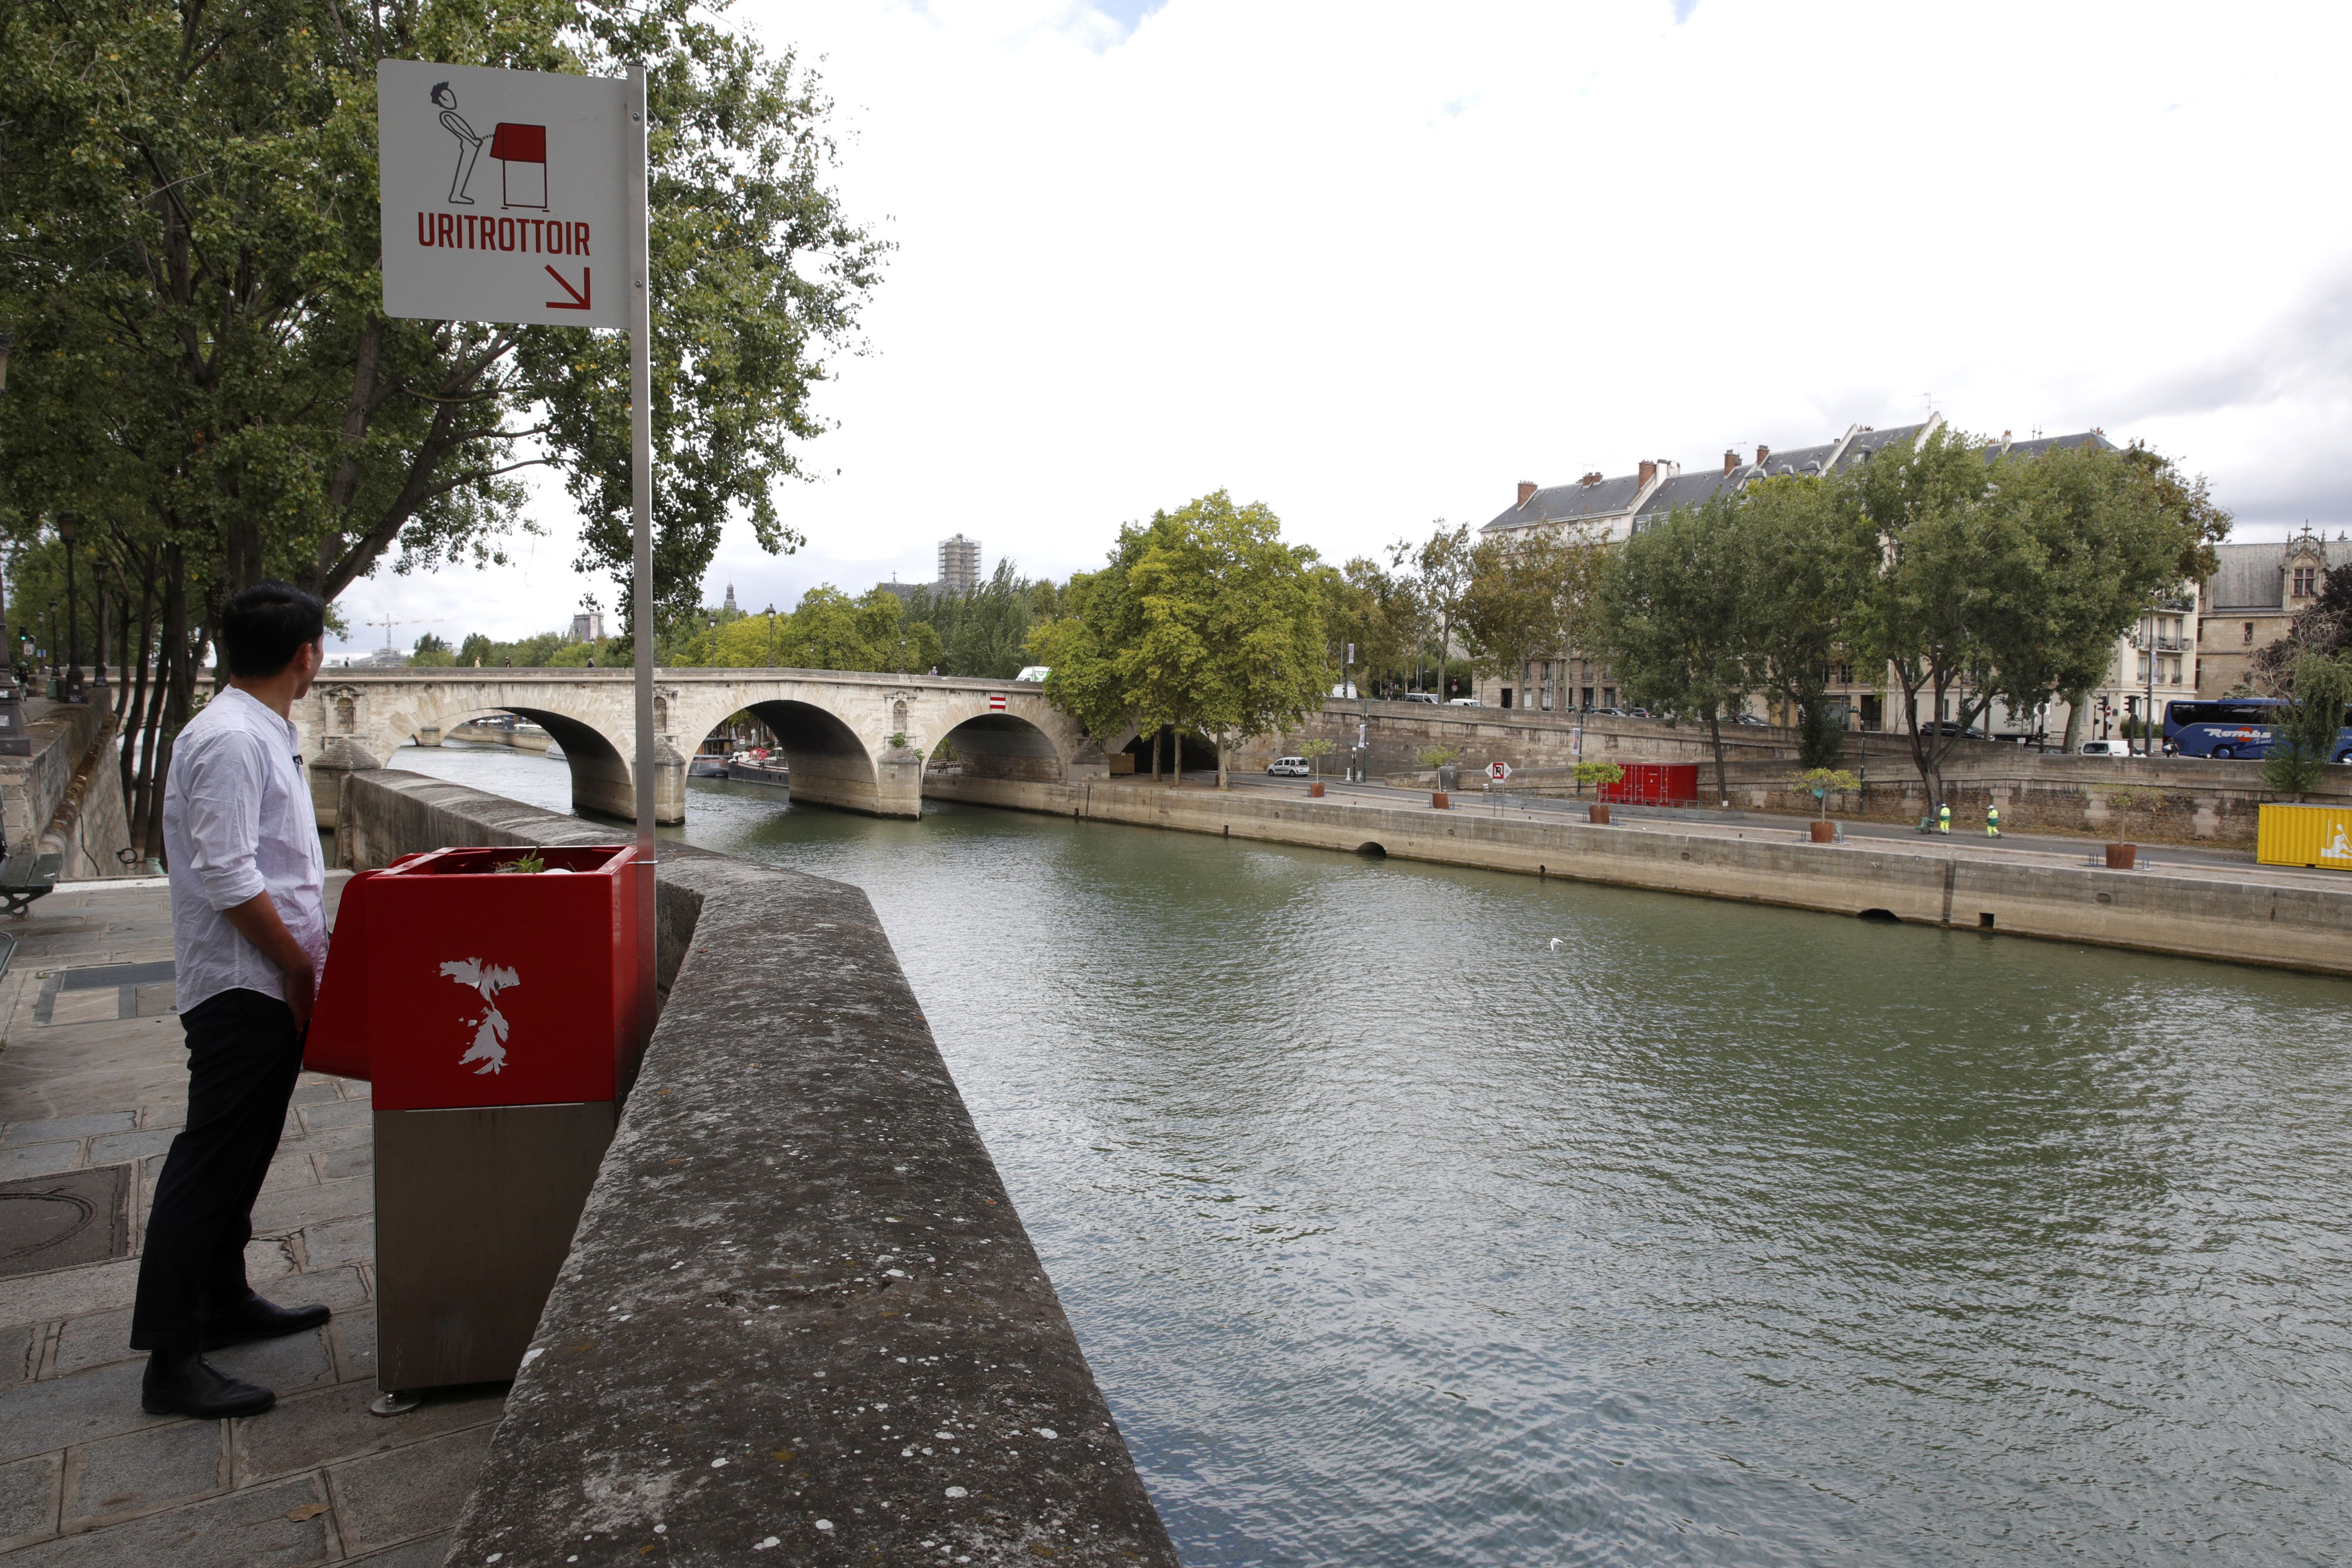 A journalist poses as he stands in front of a bright red, eco-friendly urinal on the Ile Saint-Louis along the Seine River in Paris, France, August 13, 2018.  REUTERS/Philippe Wojazer